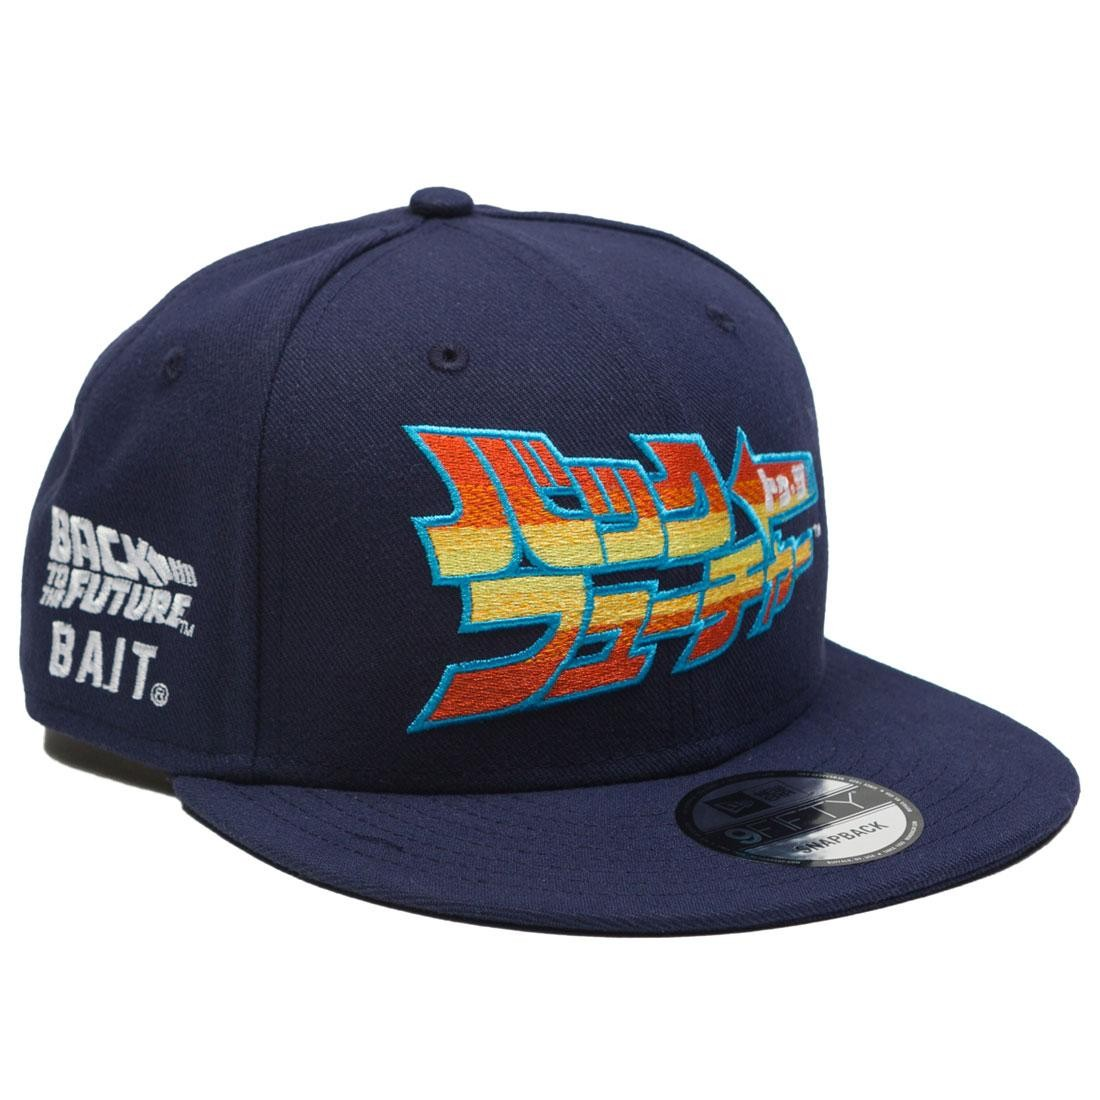 BAIT x Back To The Future x New Era Japanese Logo Cap (blue)